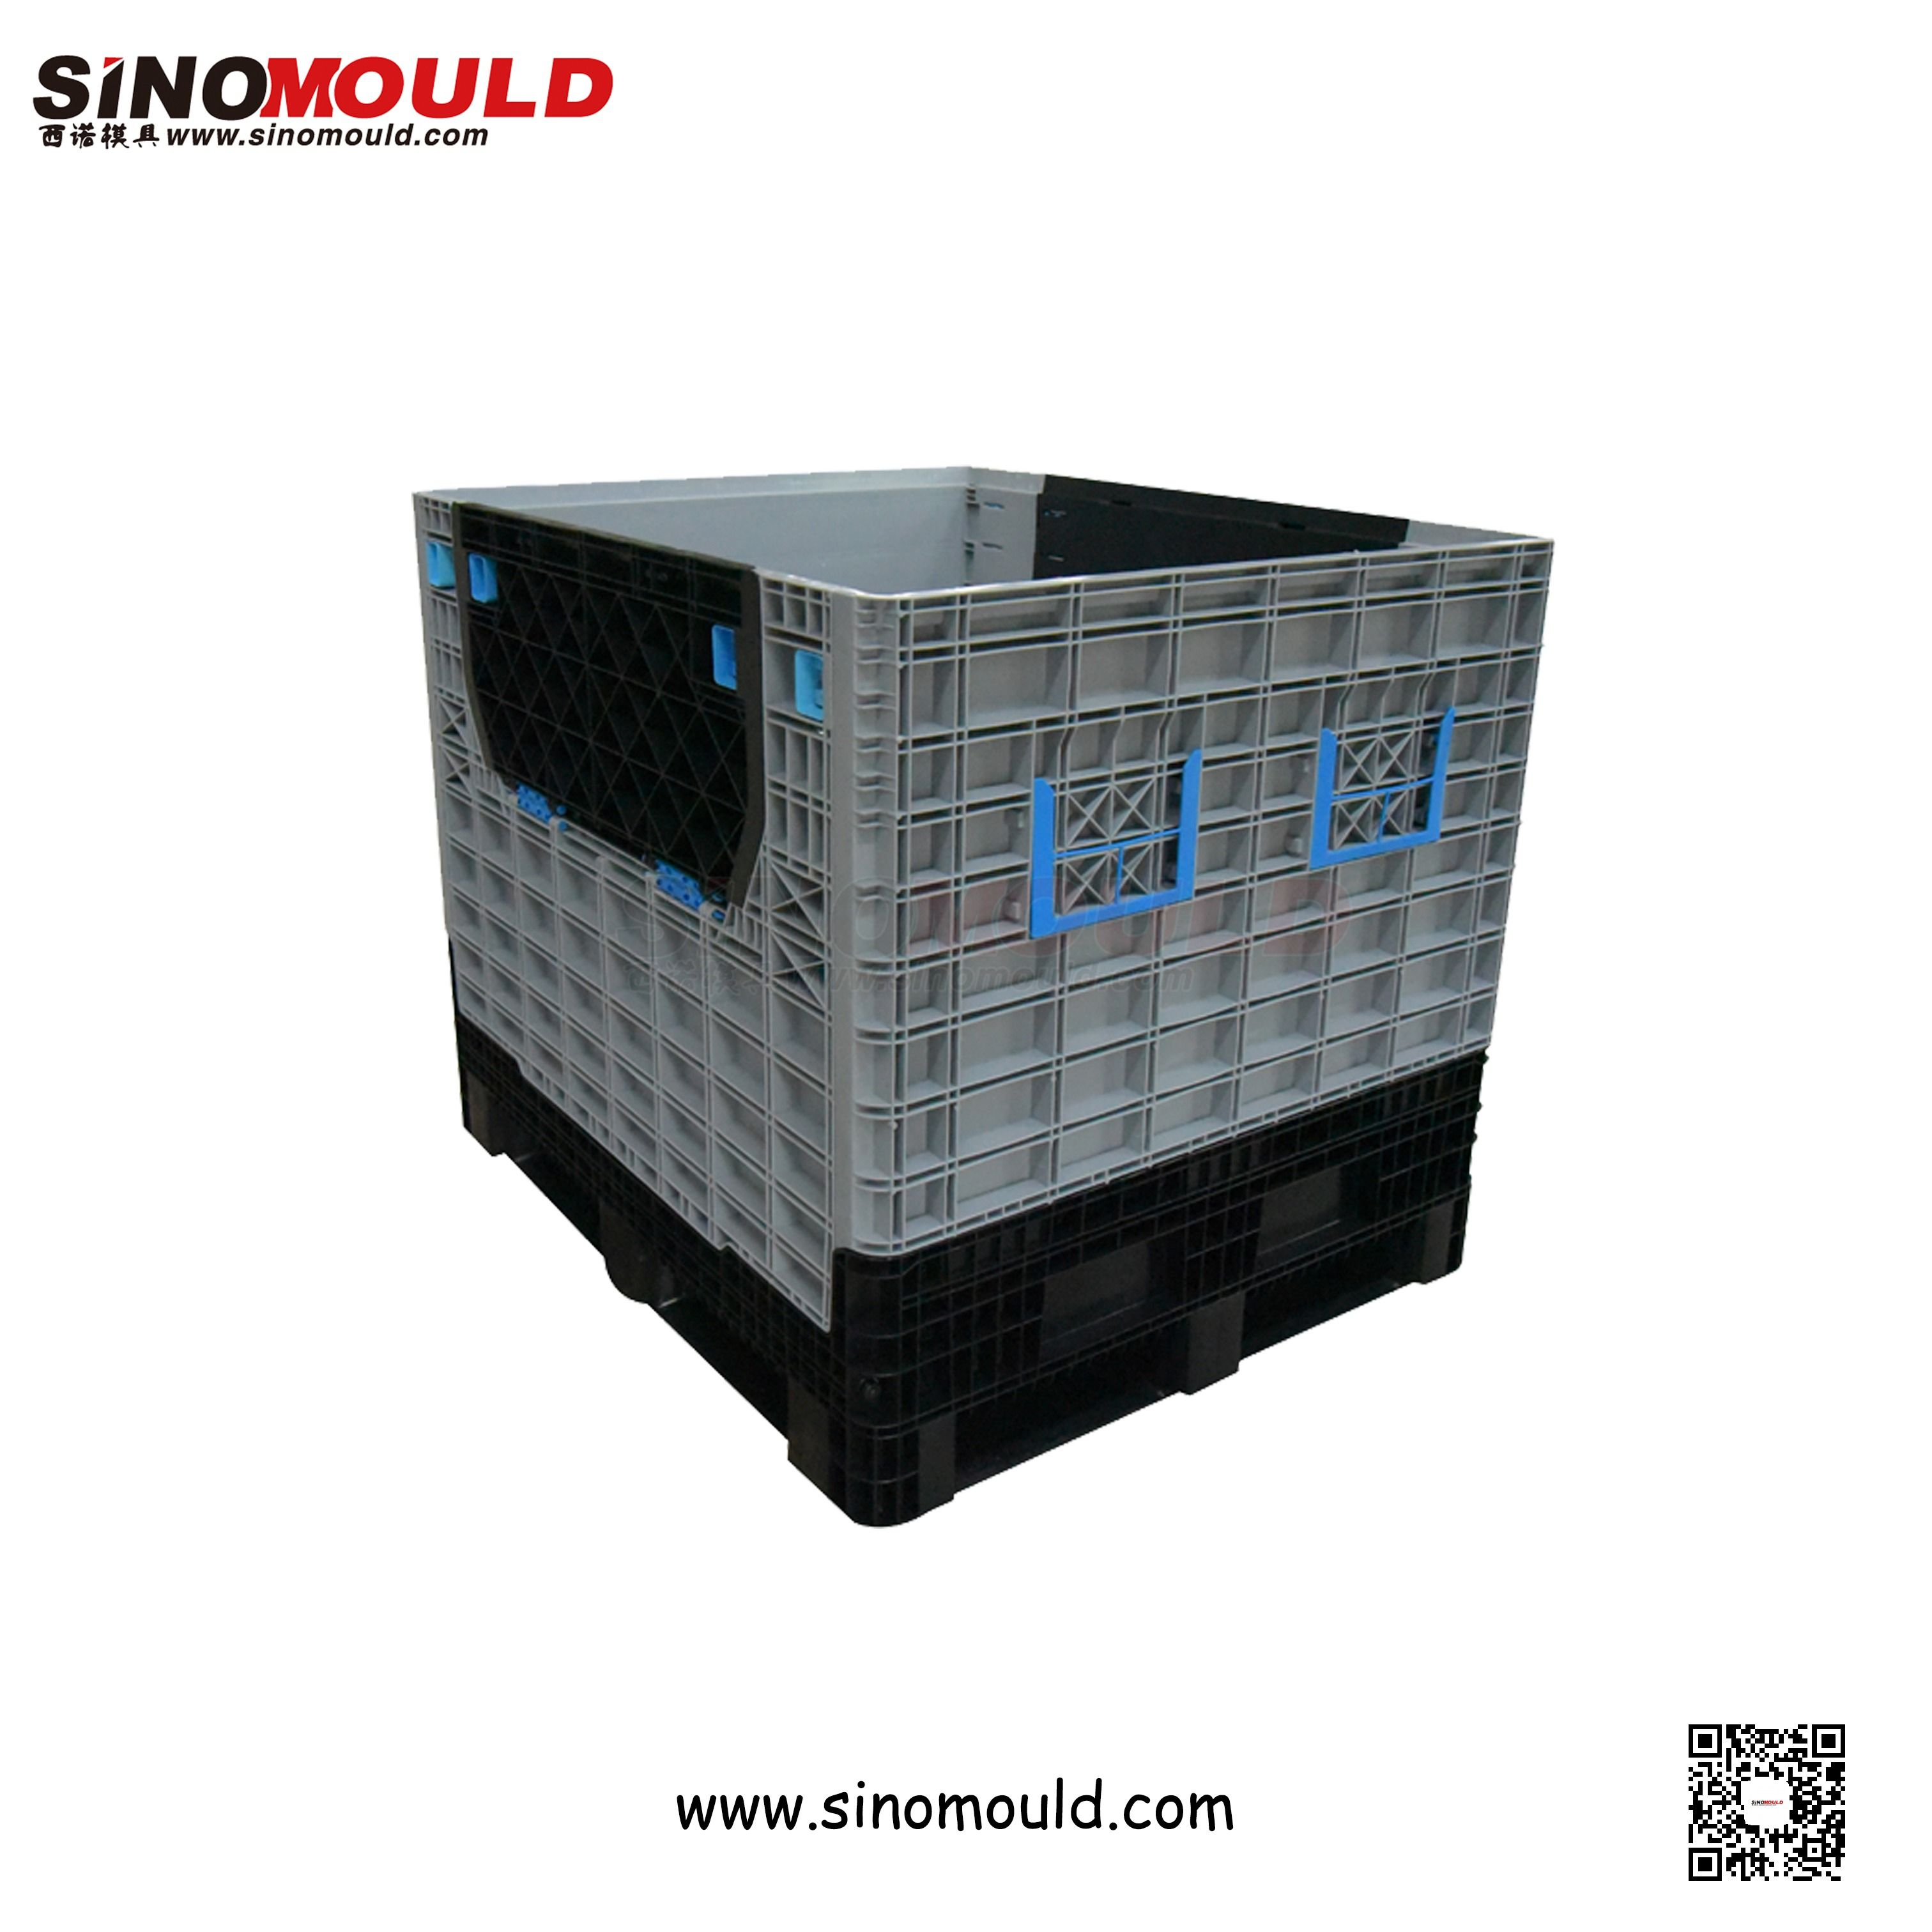 Foldable Pallet Box Welcome To Follow And Contact Us Email Sino Mould Hotmail Com Whatsapp 86 158 5868 5625